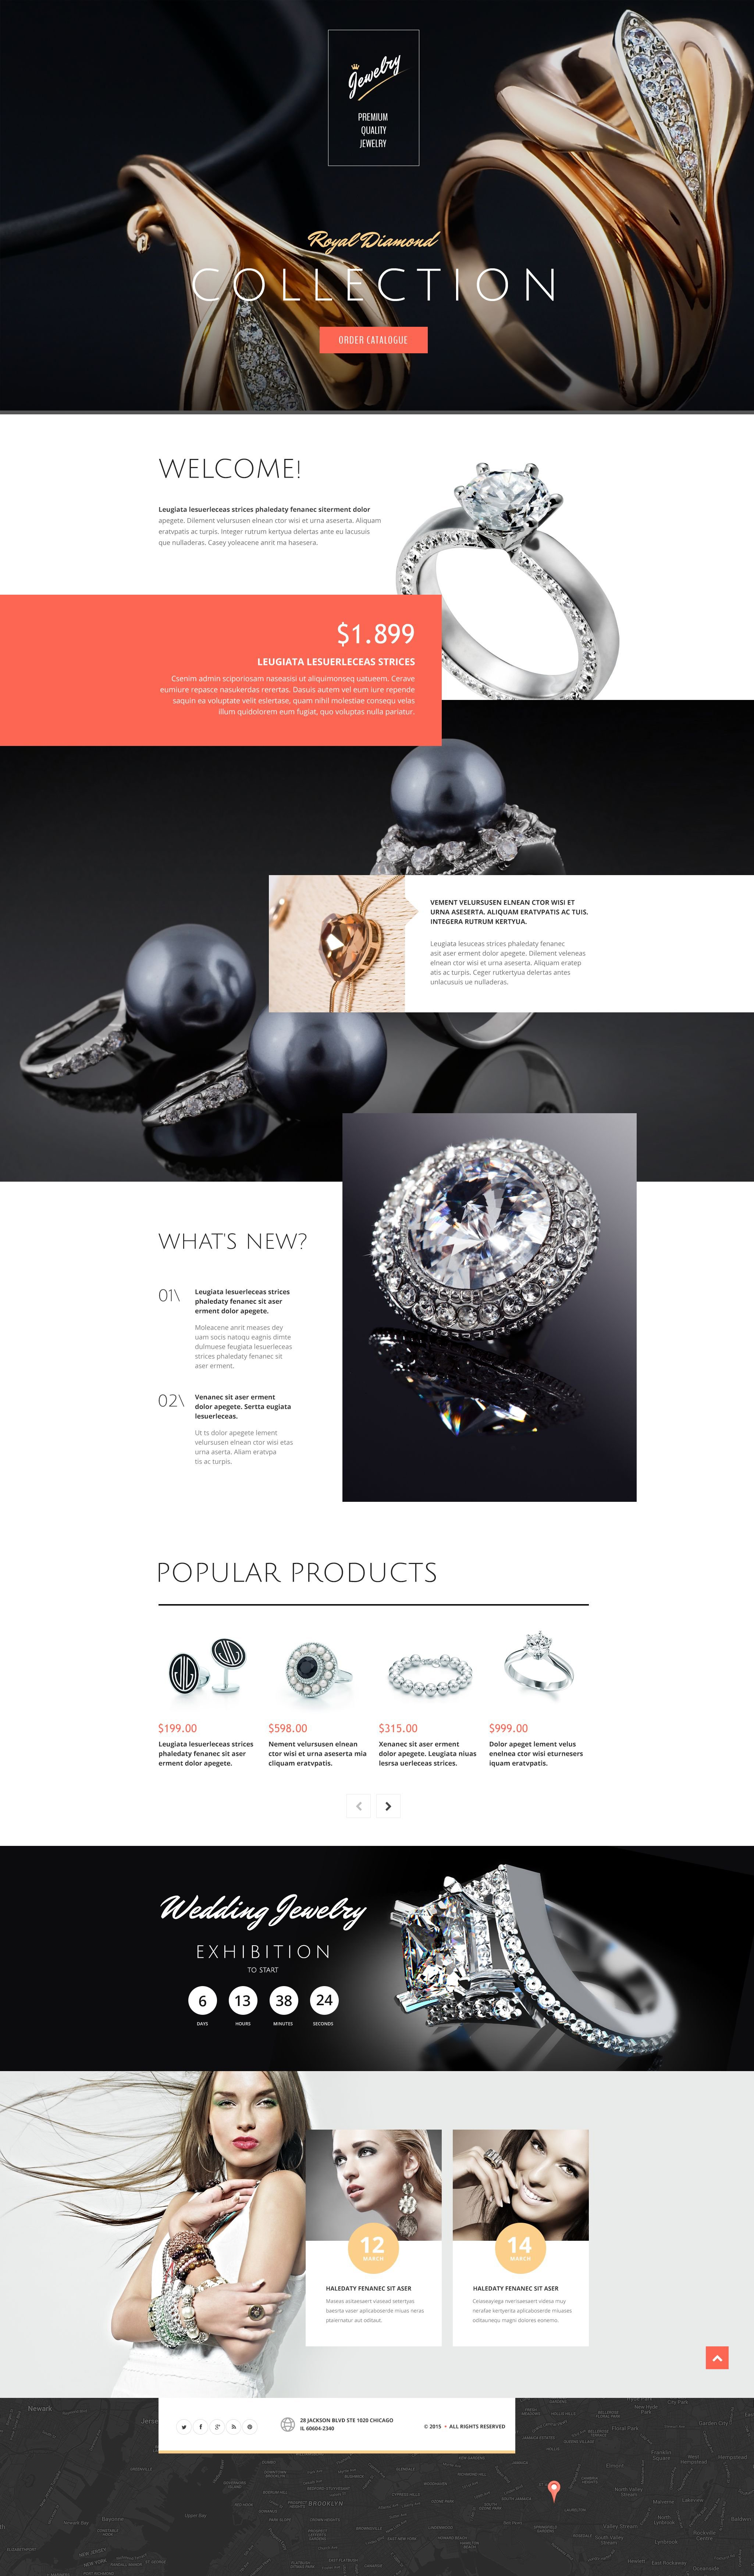 The Jewelry Brand Landing Page Template Design 53680, one of the best Landing Page templates of its kind (jewelry, most popular), also known as jewelry brand Landing Page template, collections online store Landing Page template, jewels Landing Page template, gold Landing Page template, silver Landing Page template, golden ring Landing Page template, rings Landing Page template, watch Landing Page template, watches store Landing Page template, souvenir Landing Page template, present and related with jewelry brand, collections online store, jewels, gold, silver, golden ring, rings, watch, watches store, souvenir, present, etc.